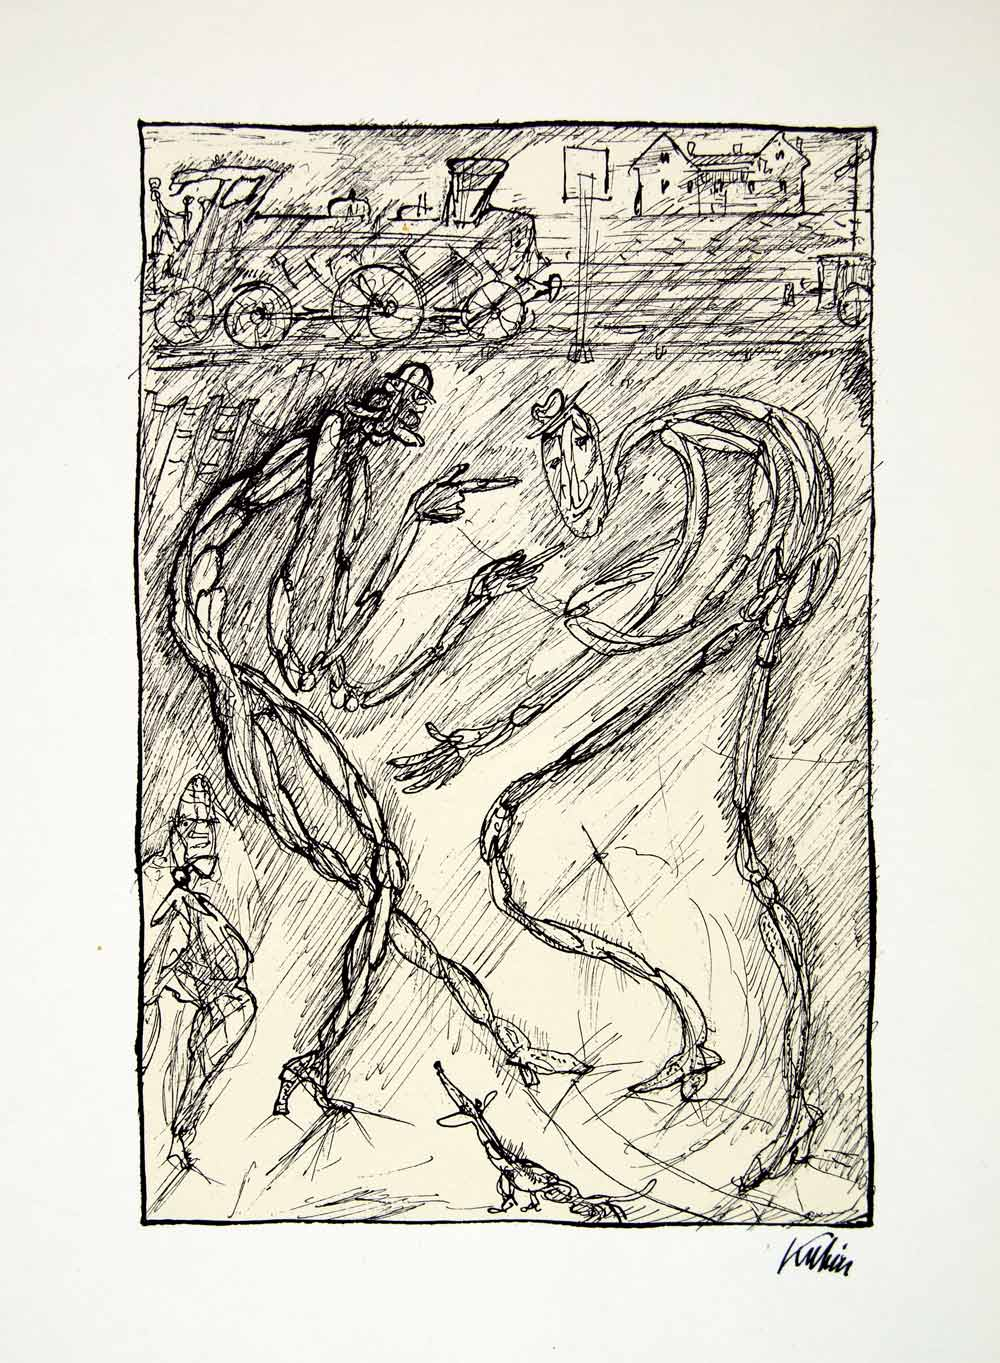 1969 Aquatone Print Alfred Kubin Modern Sketch Art Lively Dispute XDG2